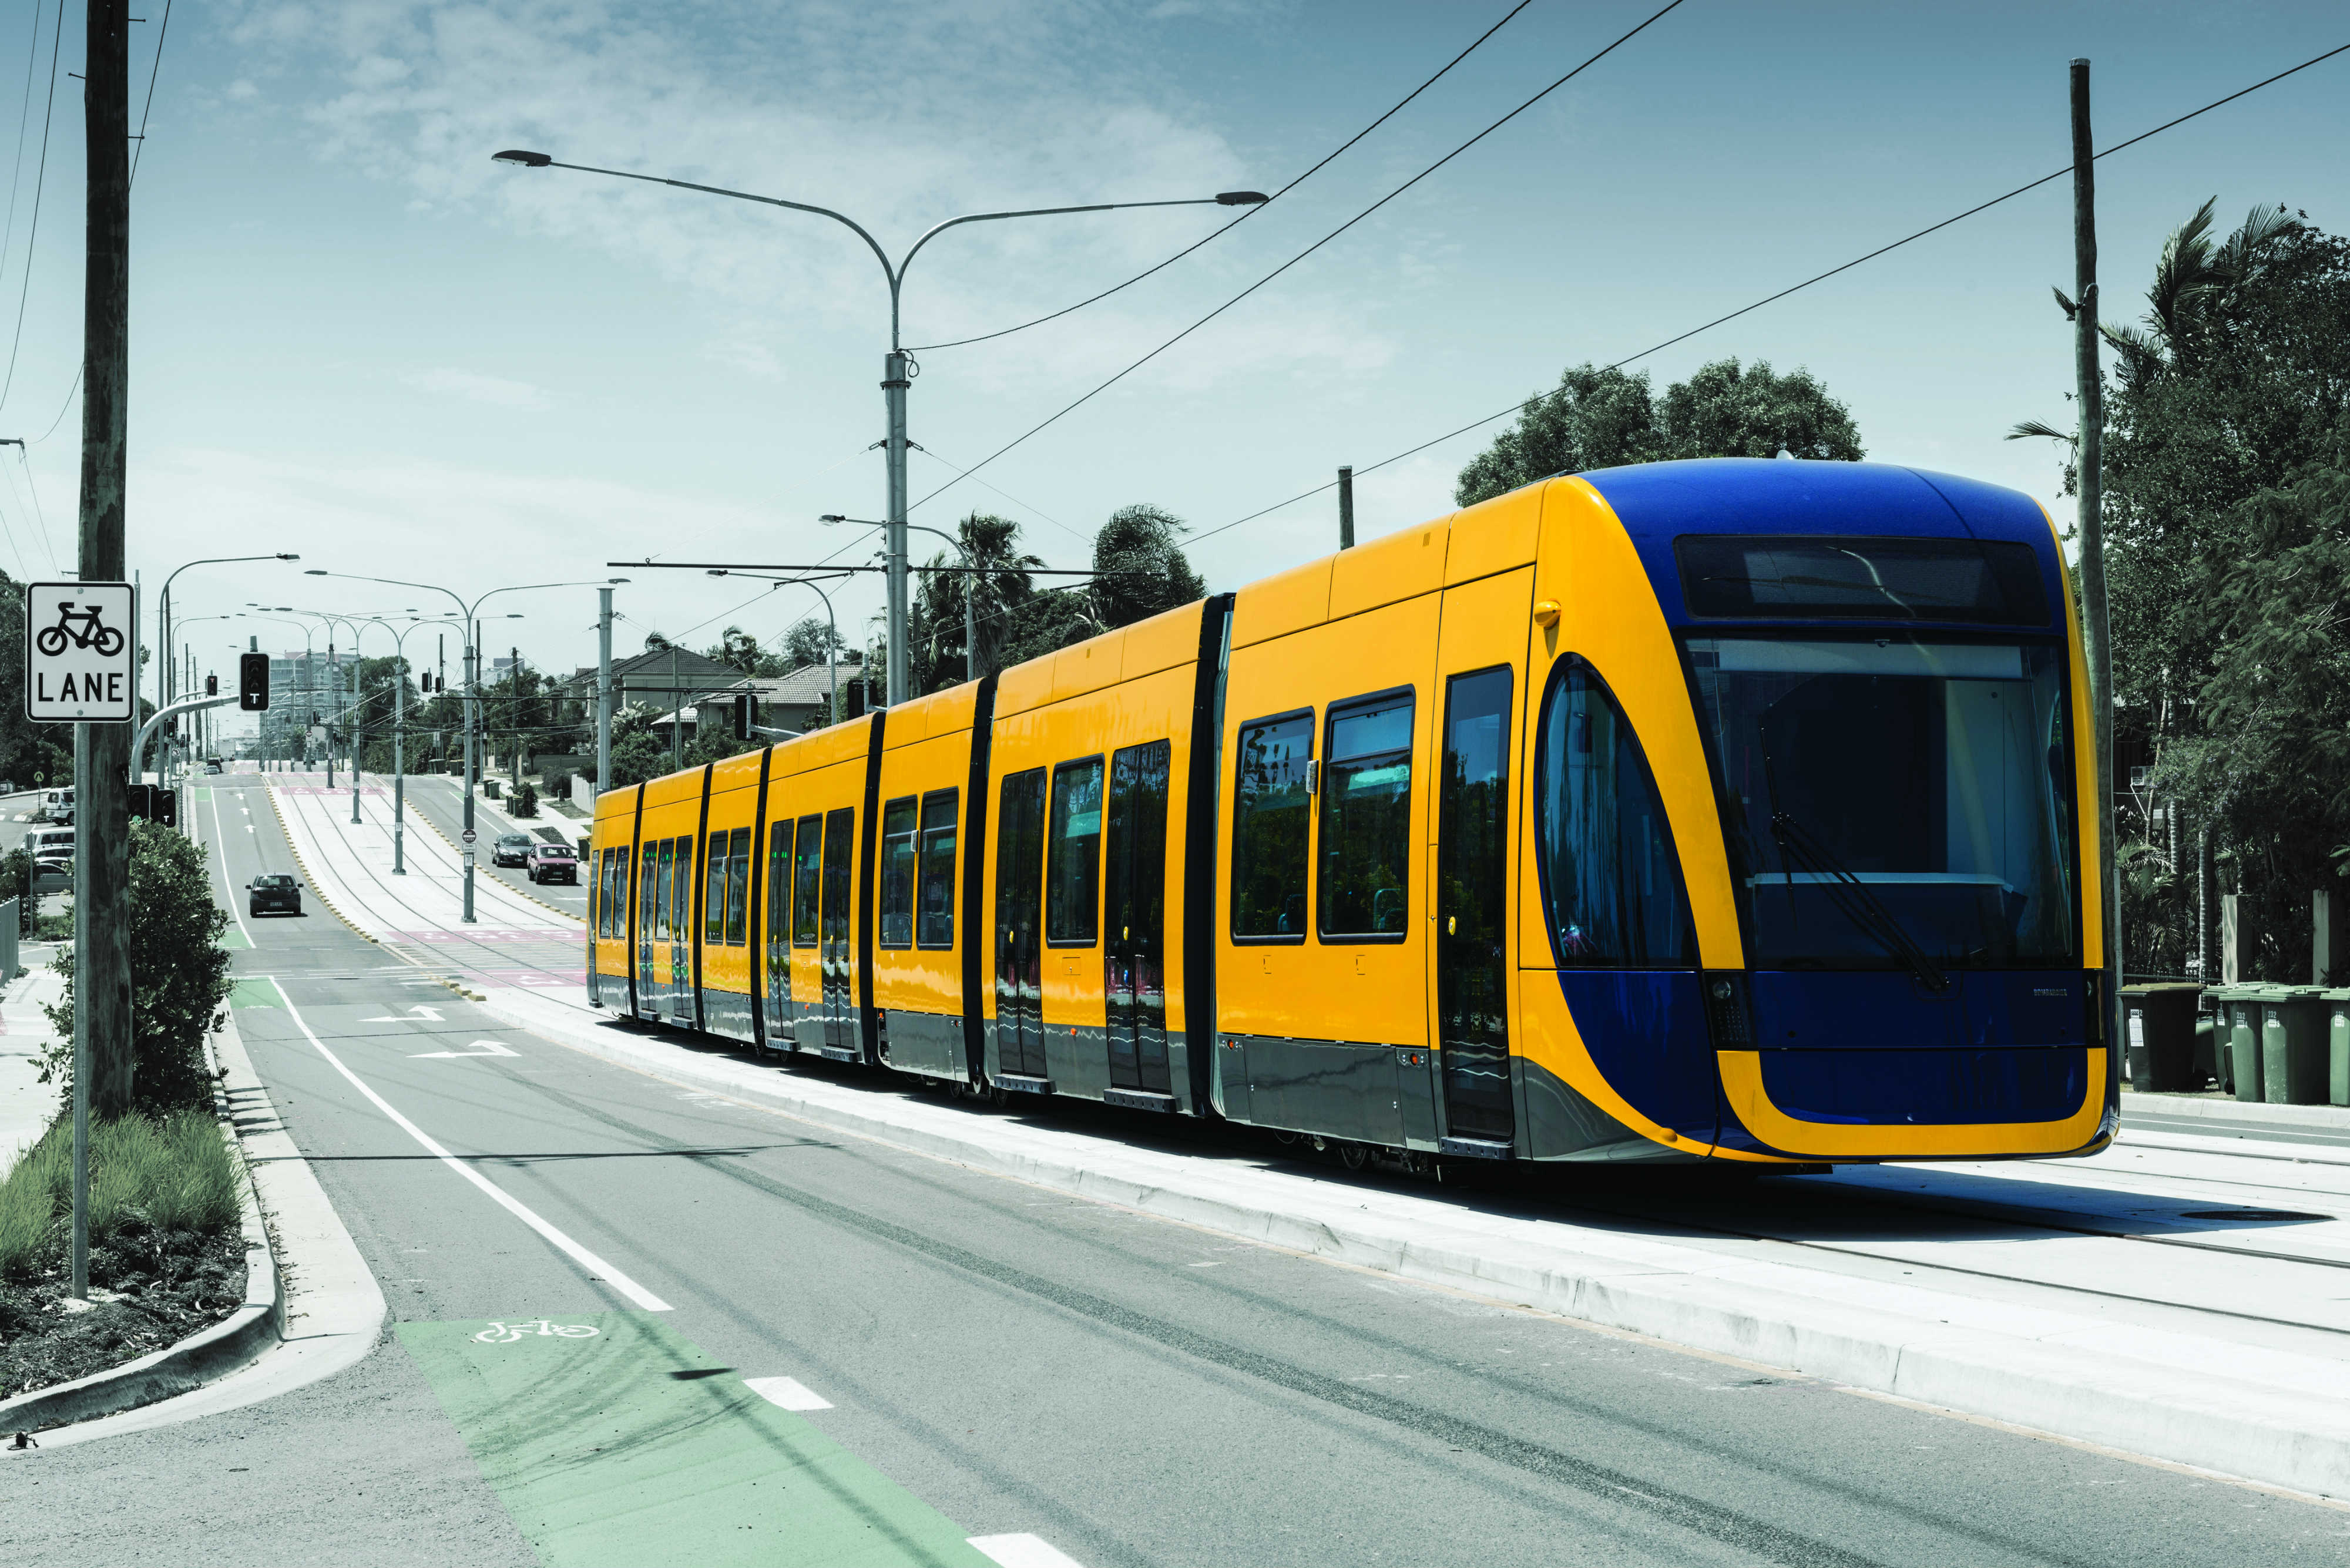 Bombardier showcases Victoria's manufacturing capability at Light Rail 2016